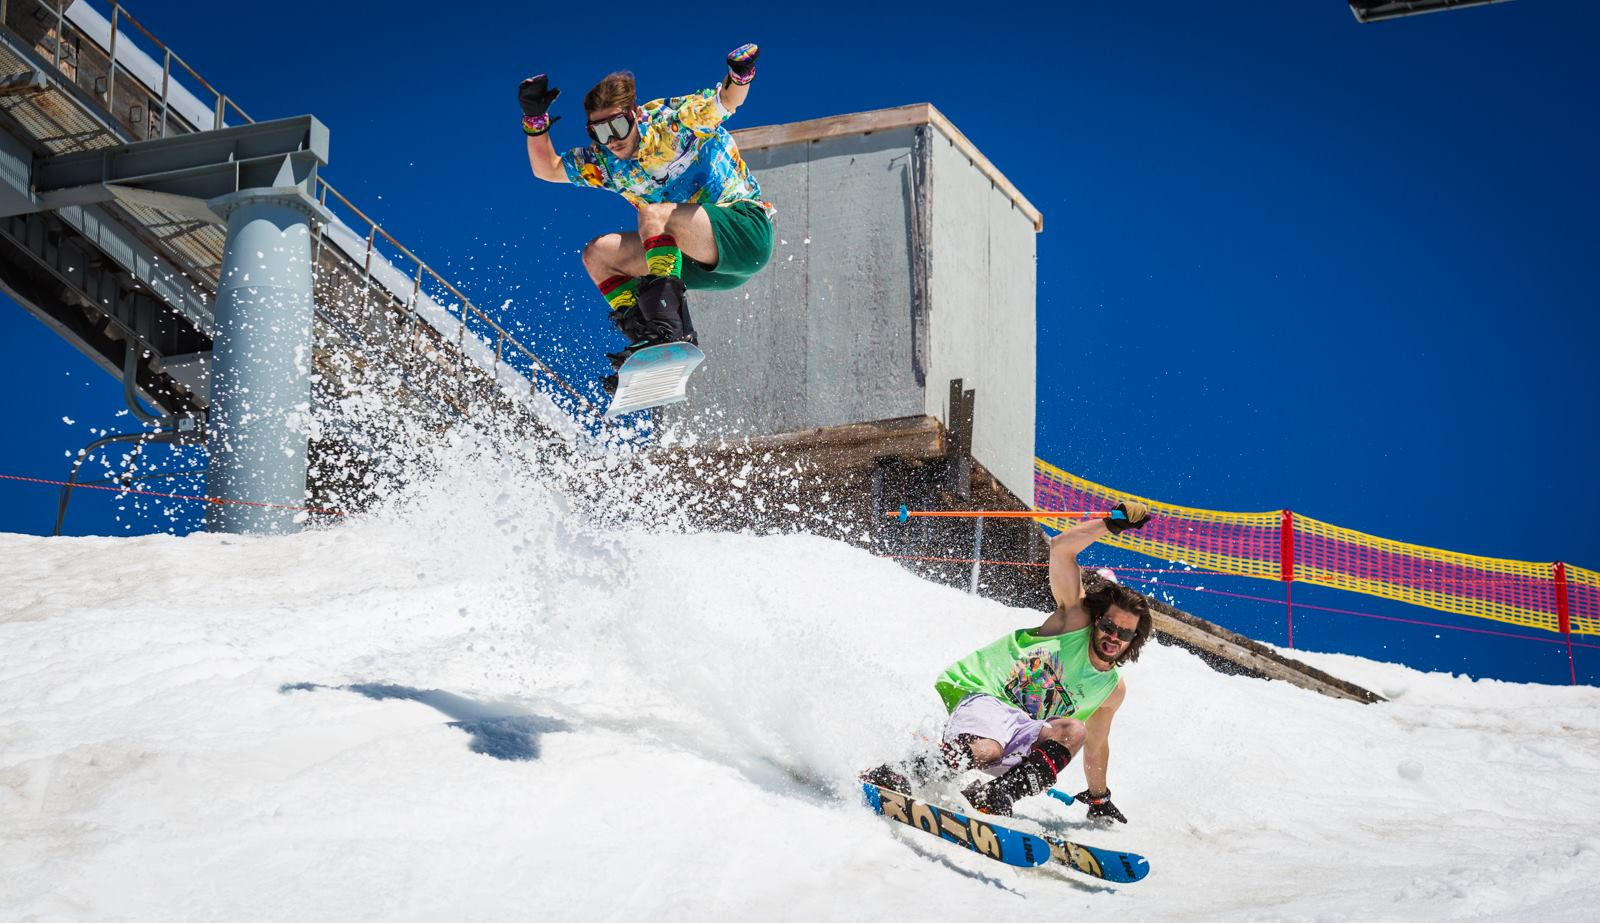 Ripping the Palmer Snowfield at Timberline Lodge, OR this summer. photo: timberline lodge